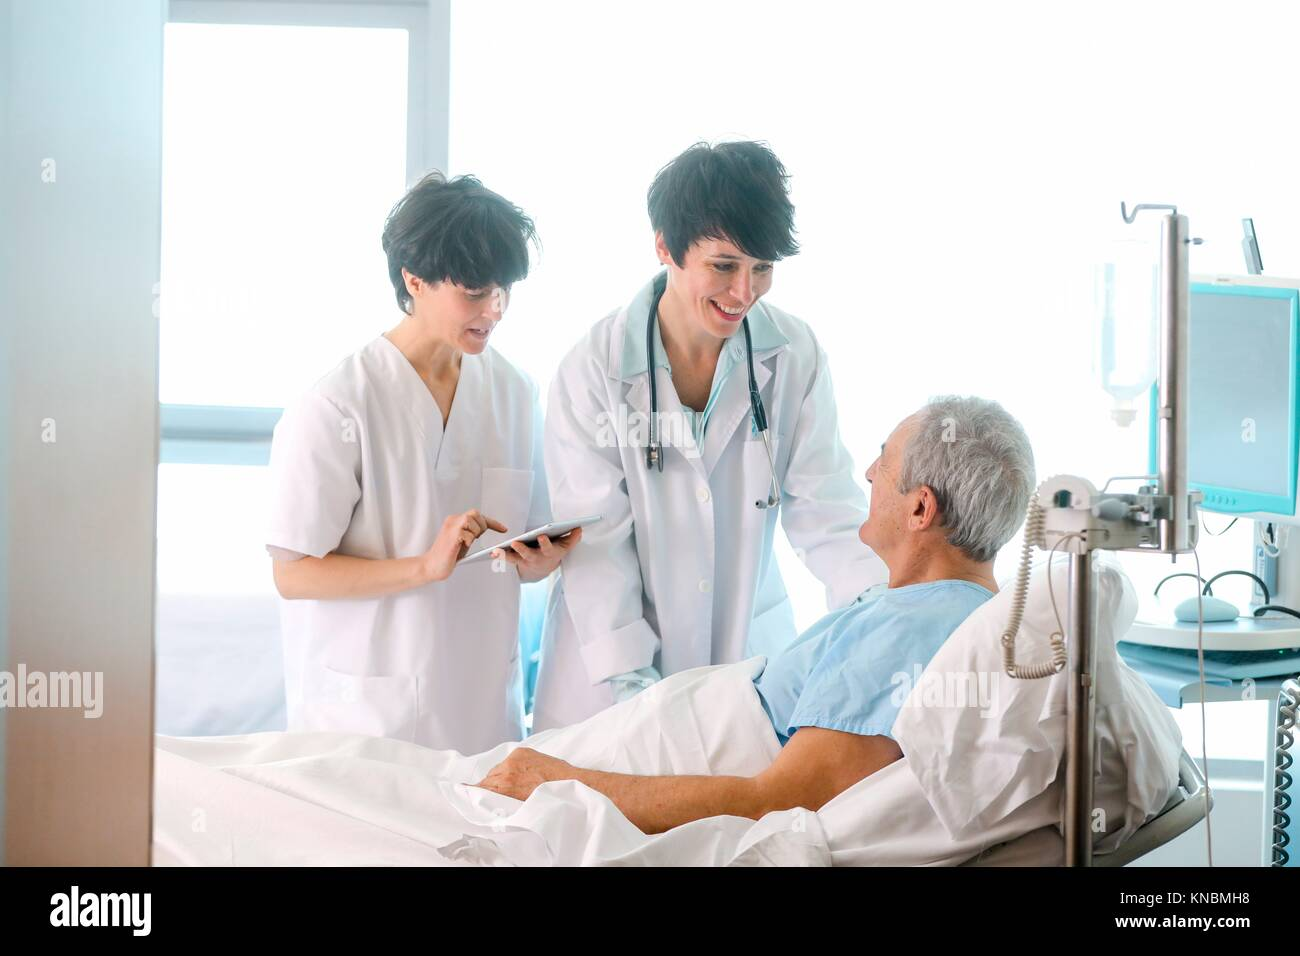 Patient in hospital room attended by a doctor, Hospital Stock Photo